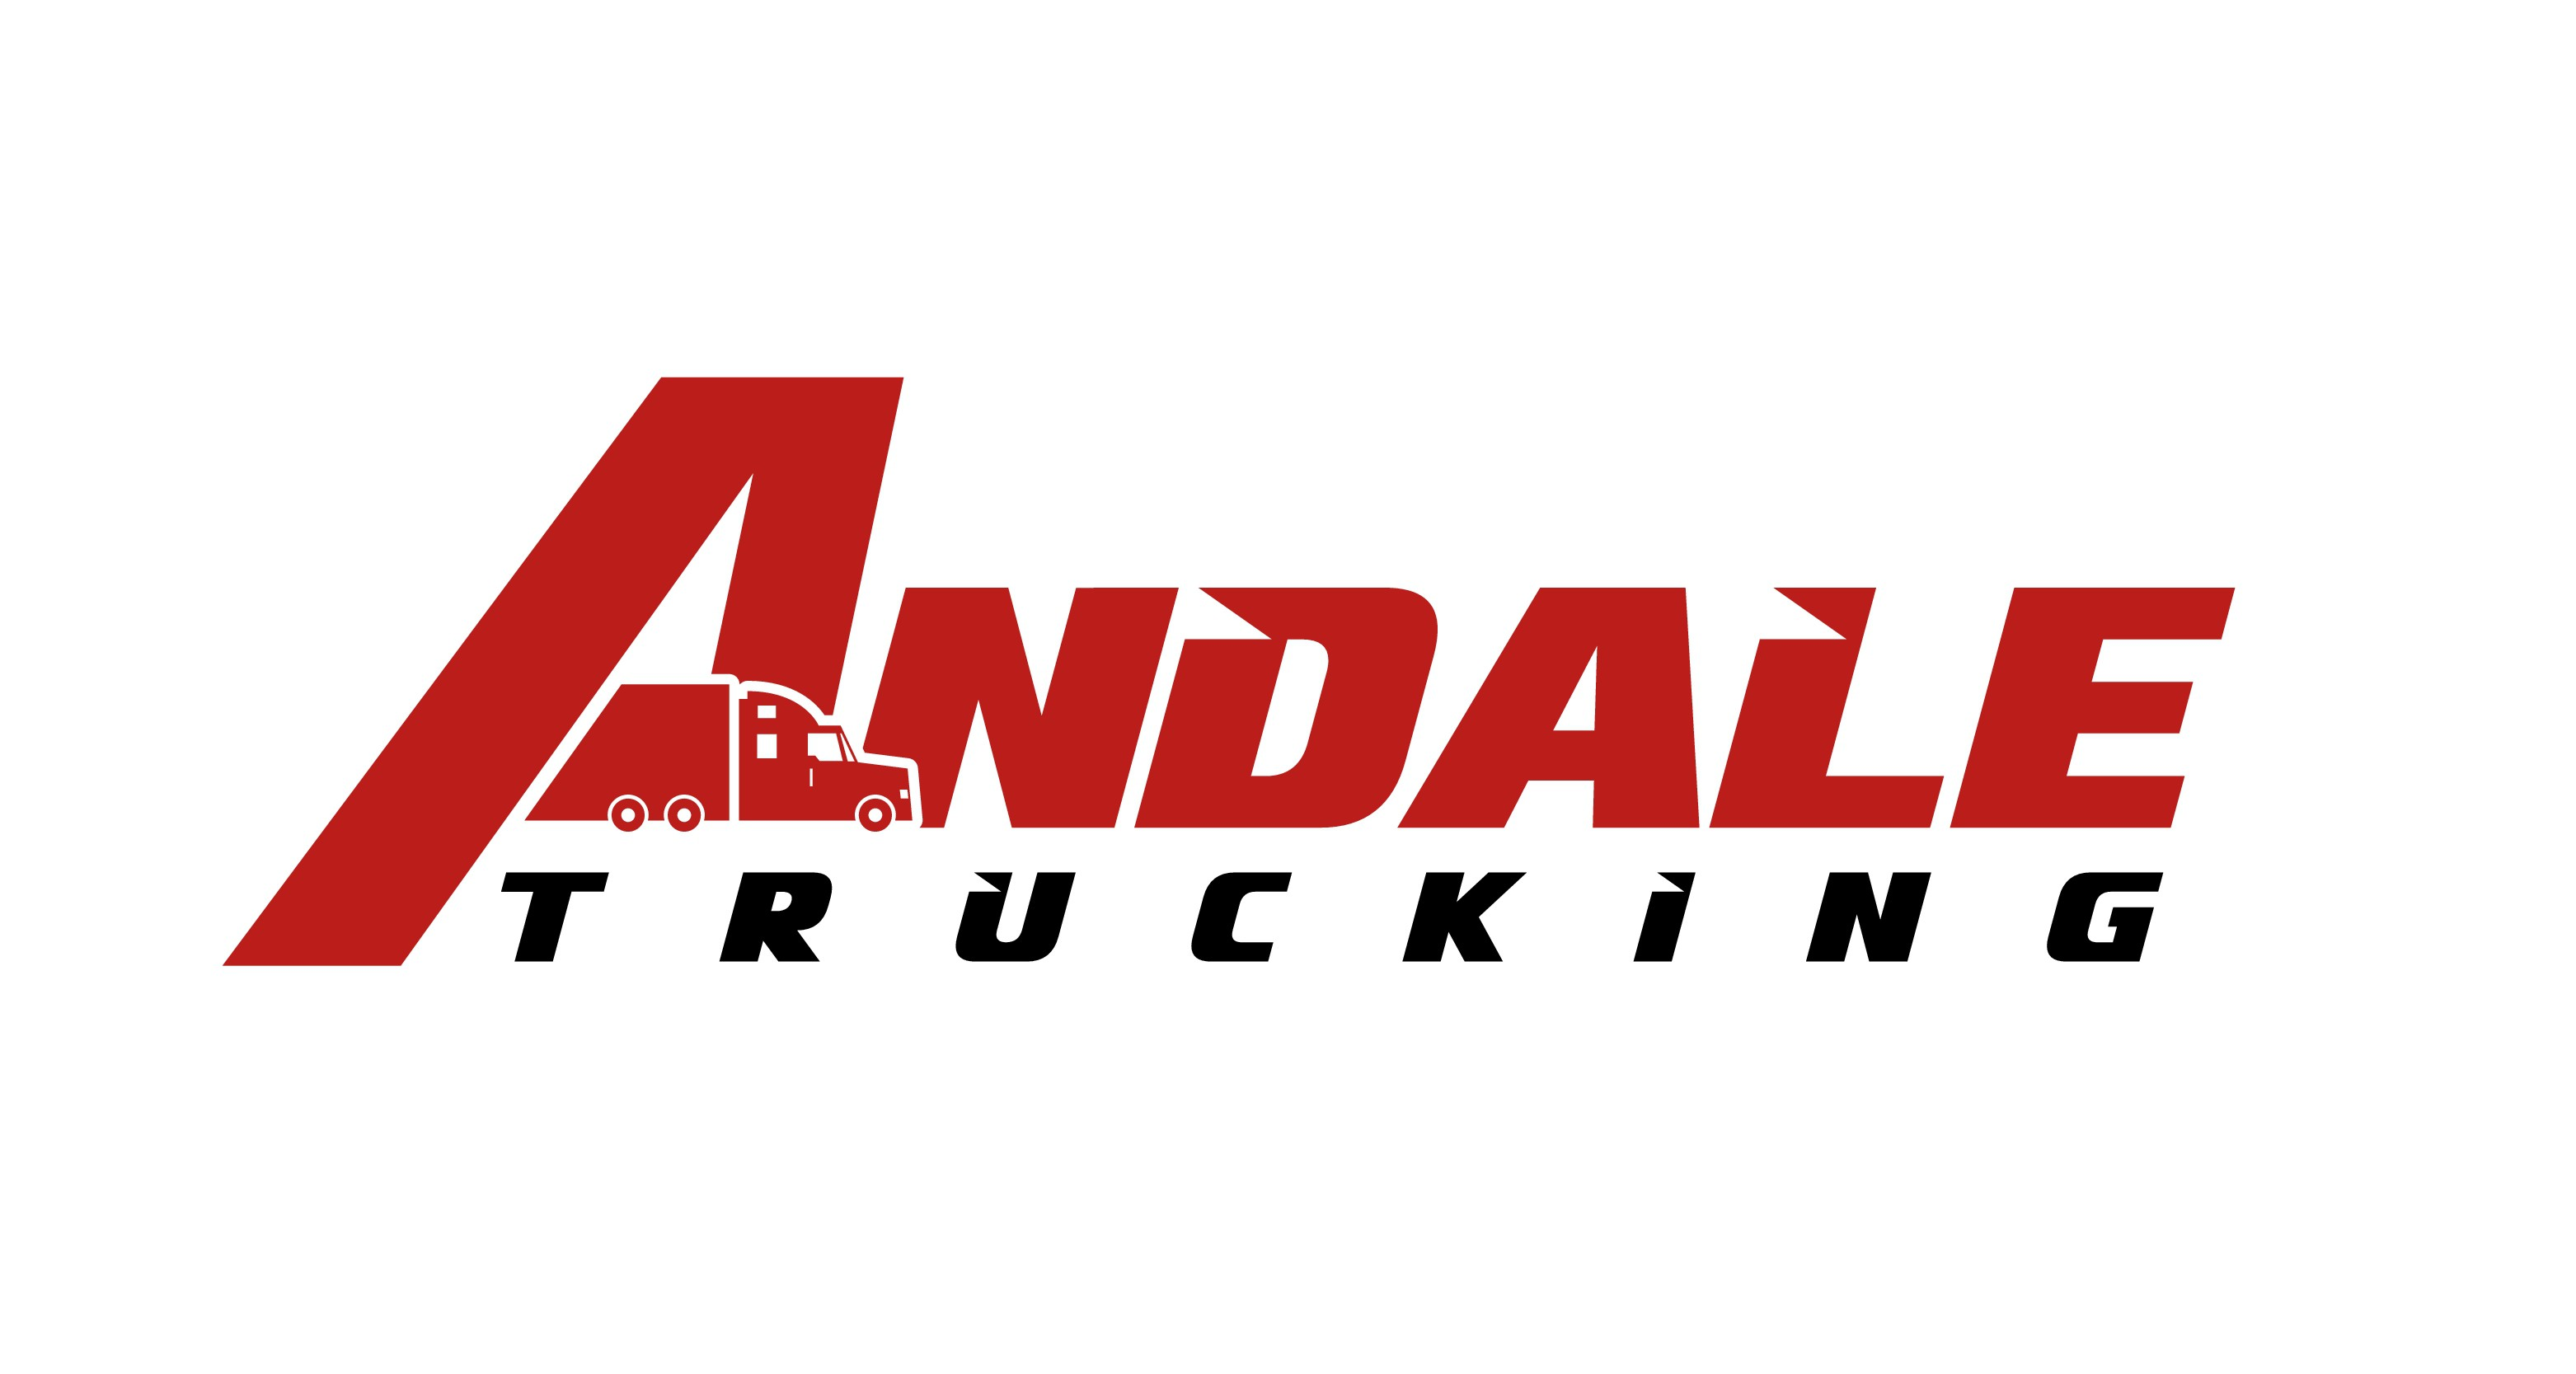 Please create a strong image type logo for Andale Trucking